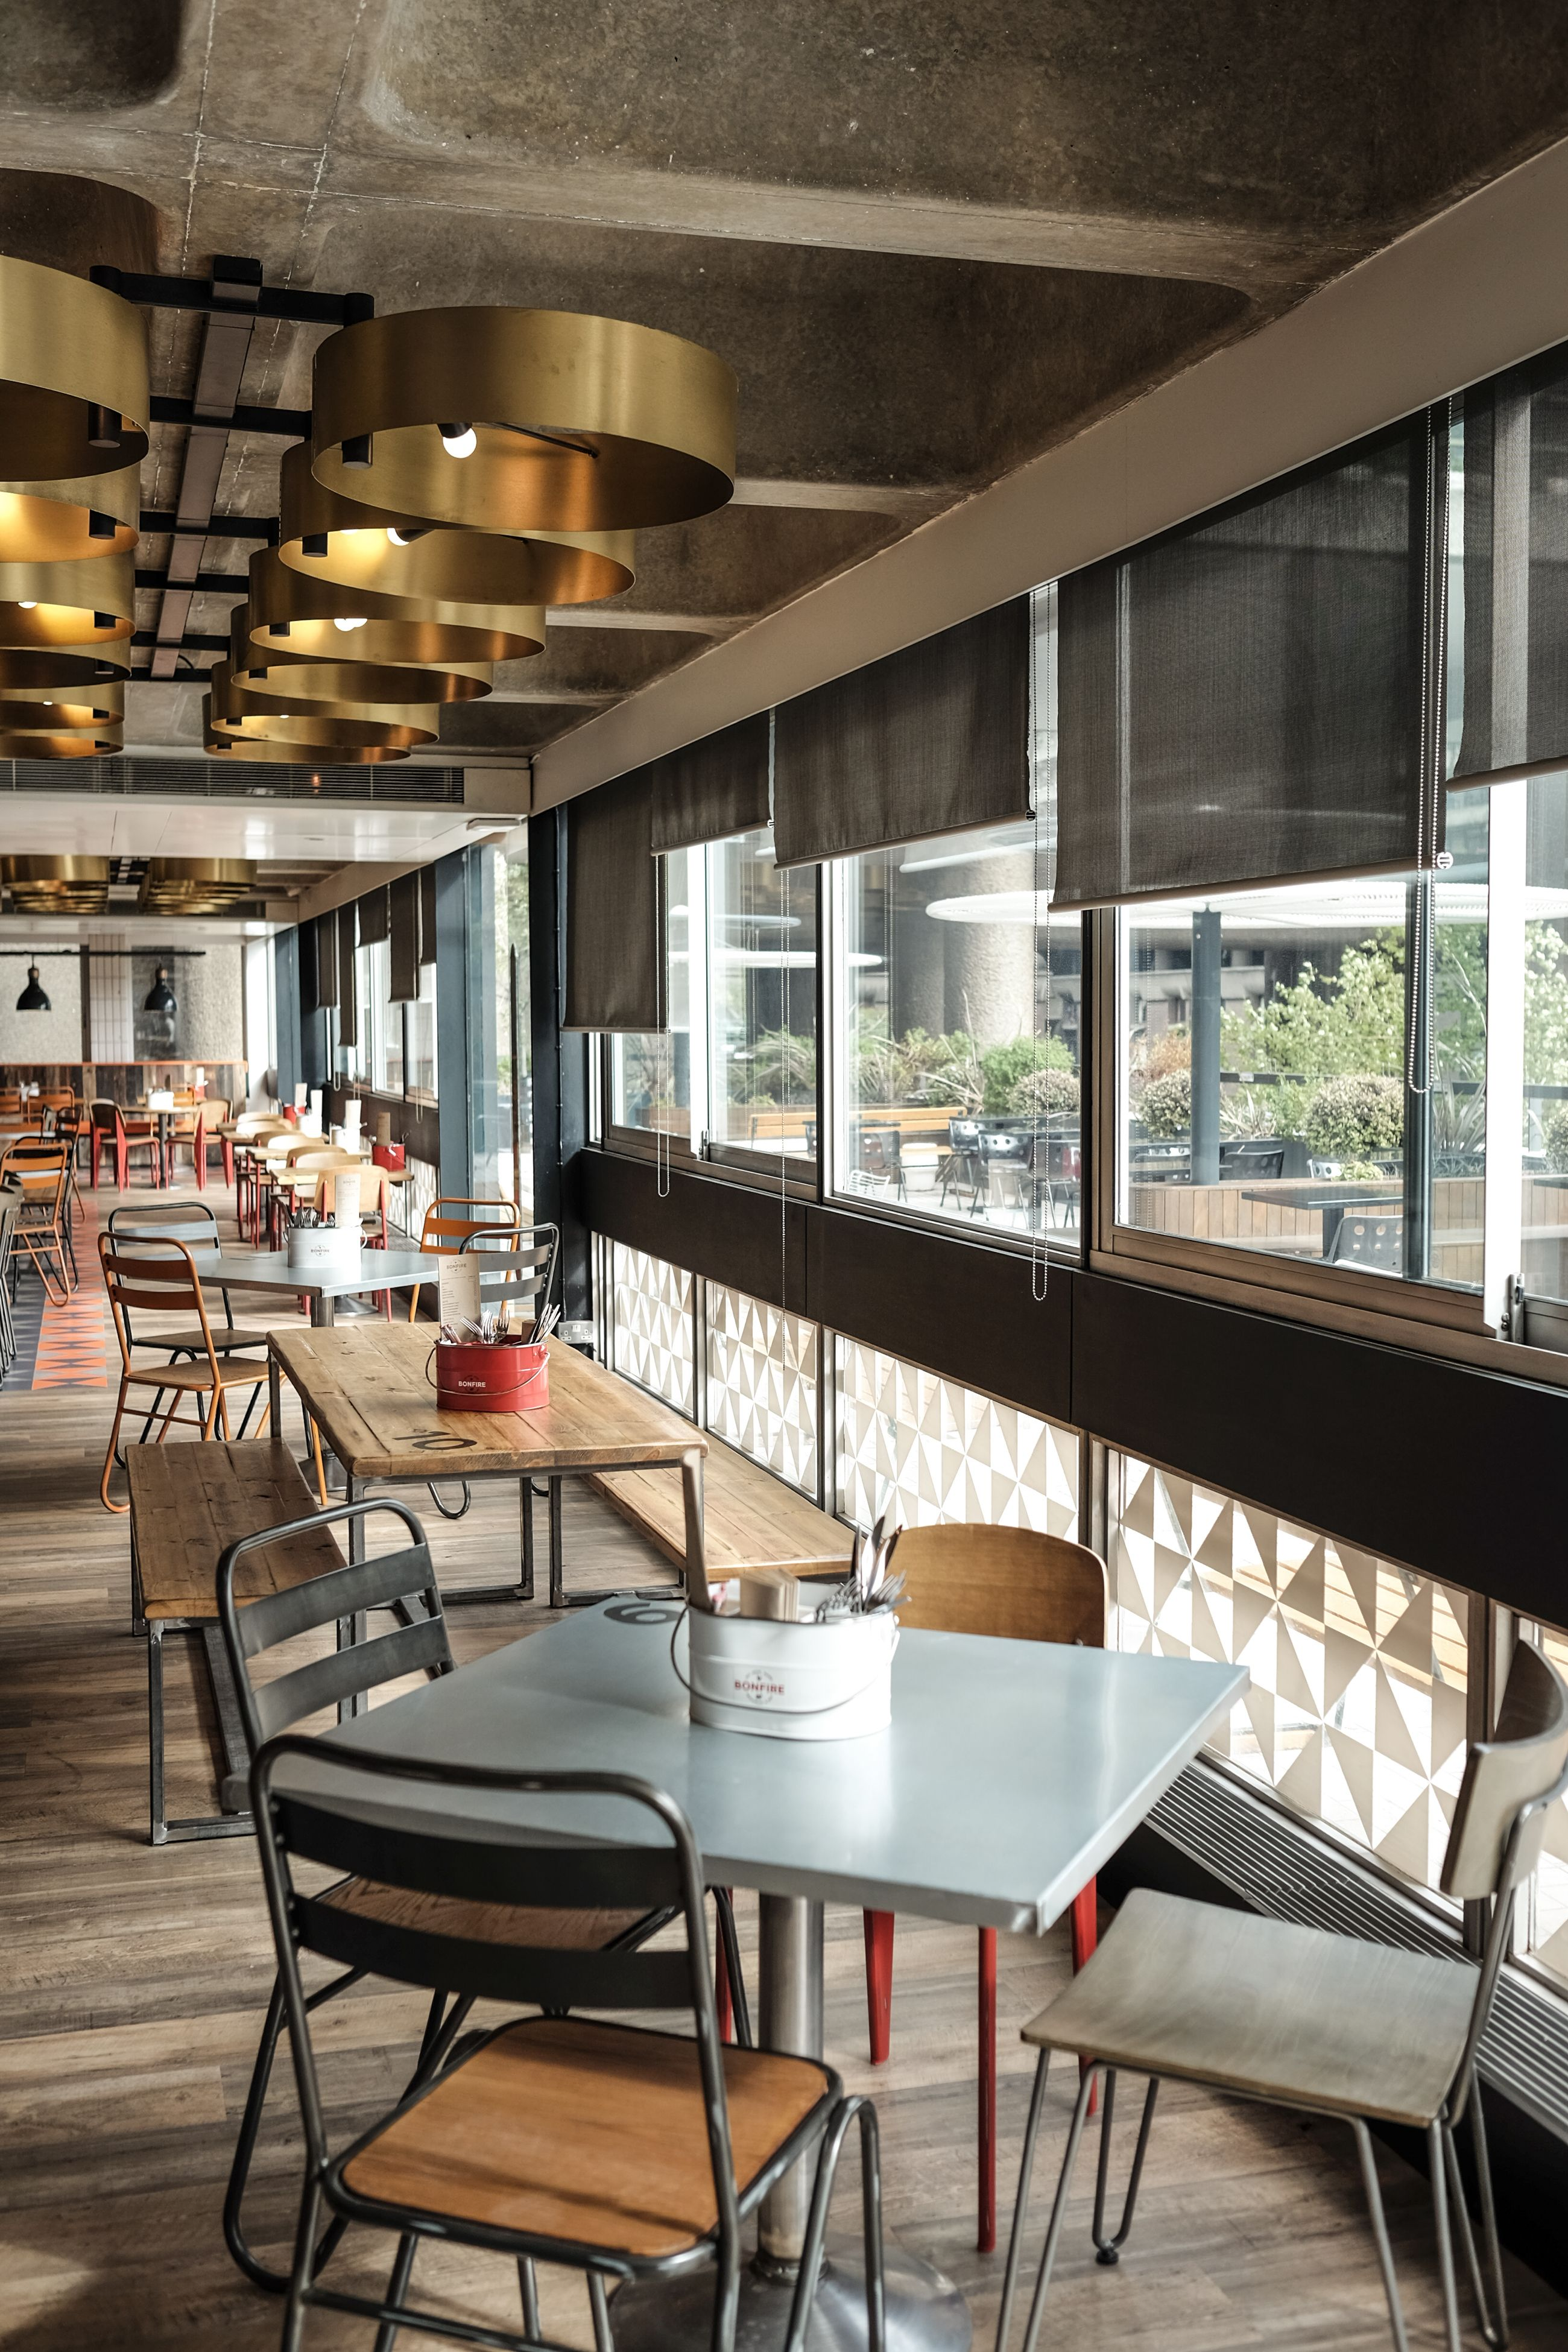 Bonfire Restaurant The Barbican Centre Designed By Catering Design Group Industrial Interiors Industrial Interior Cafe Restaurant Interior